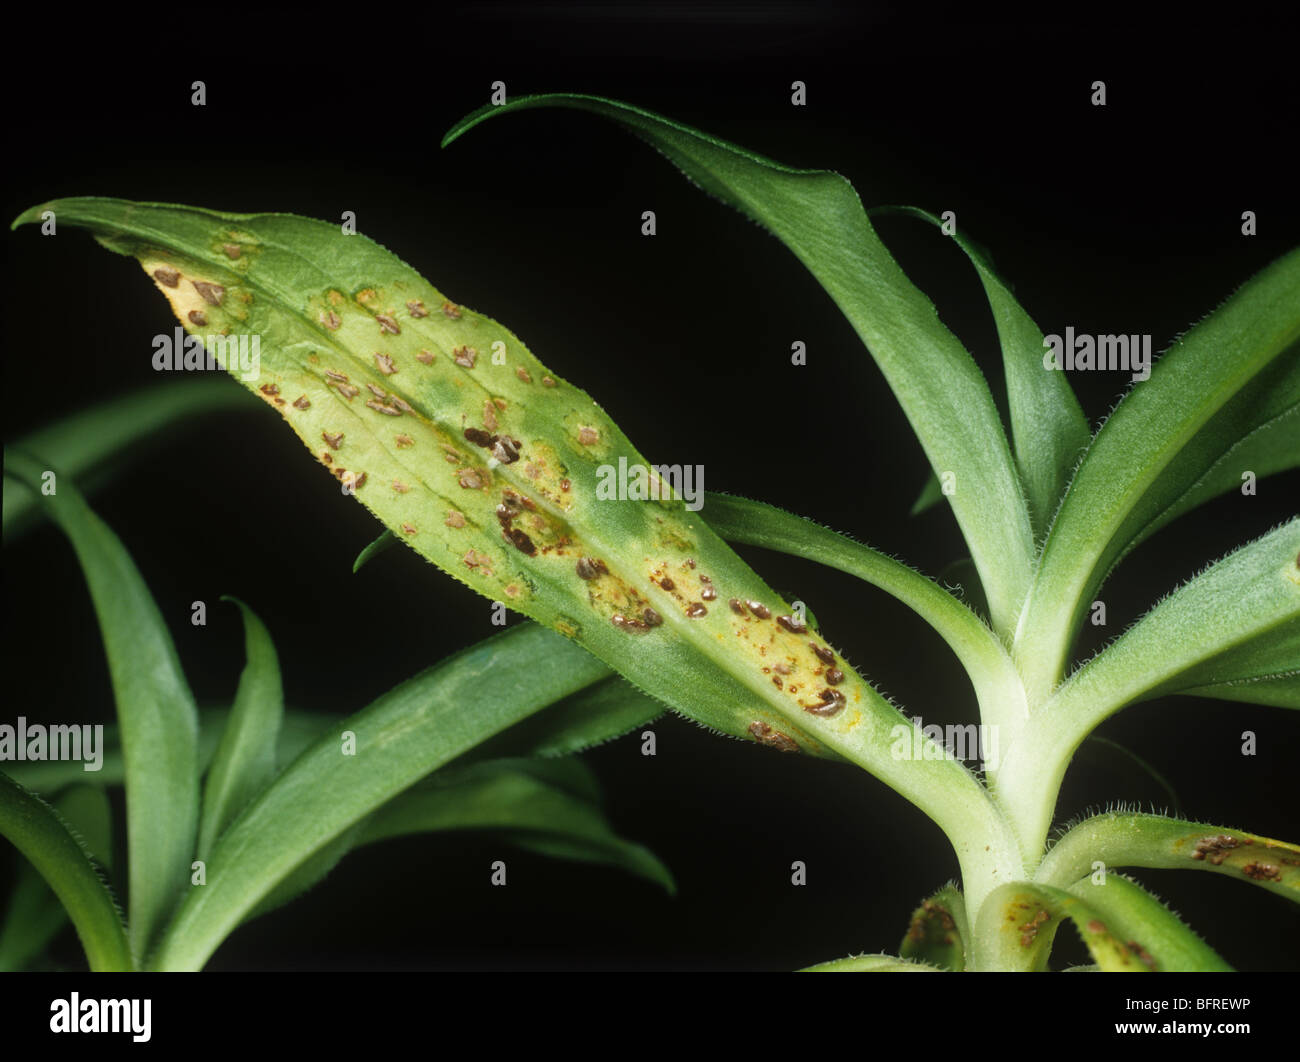 Carnation rust (Puccinia arenariae) pustules on sweet william (Dianthus barbatus) - Stock Image